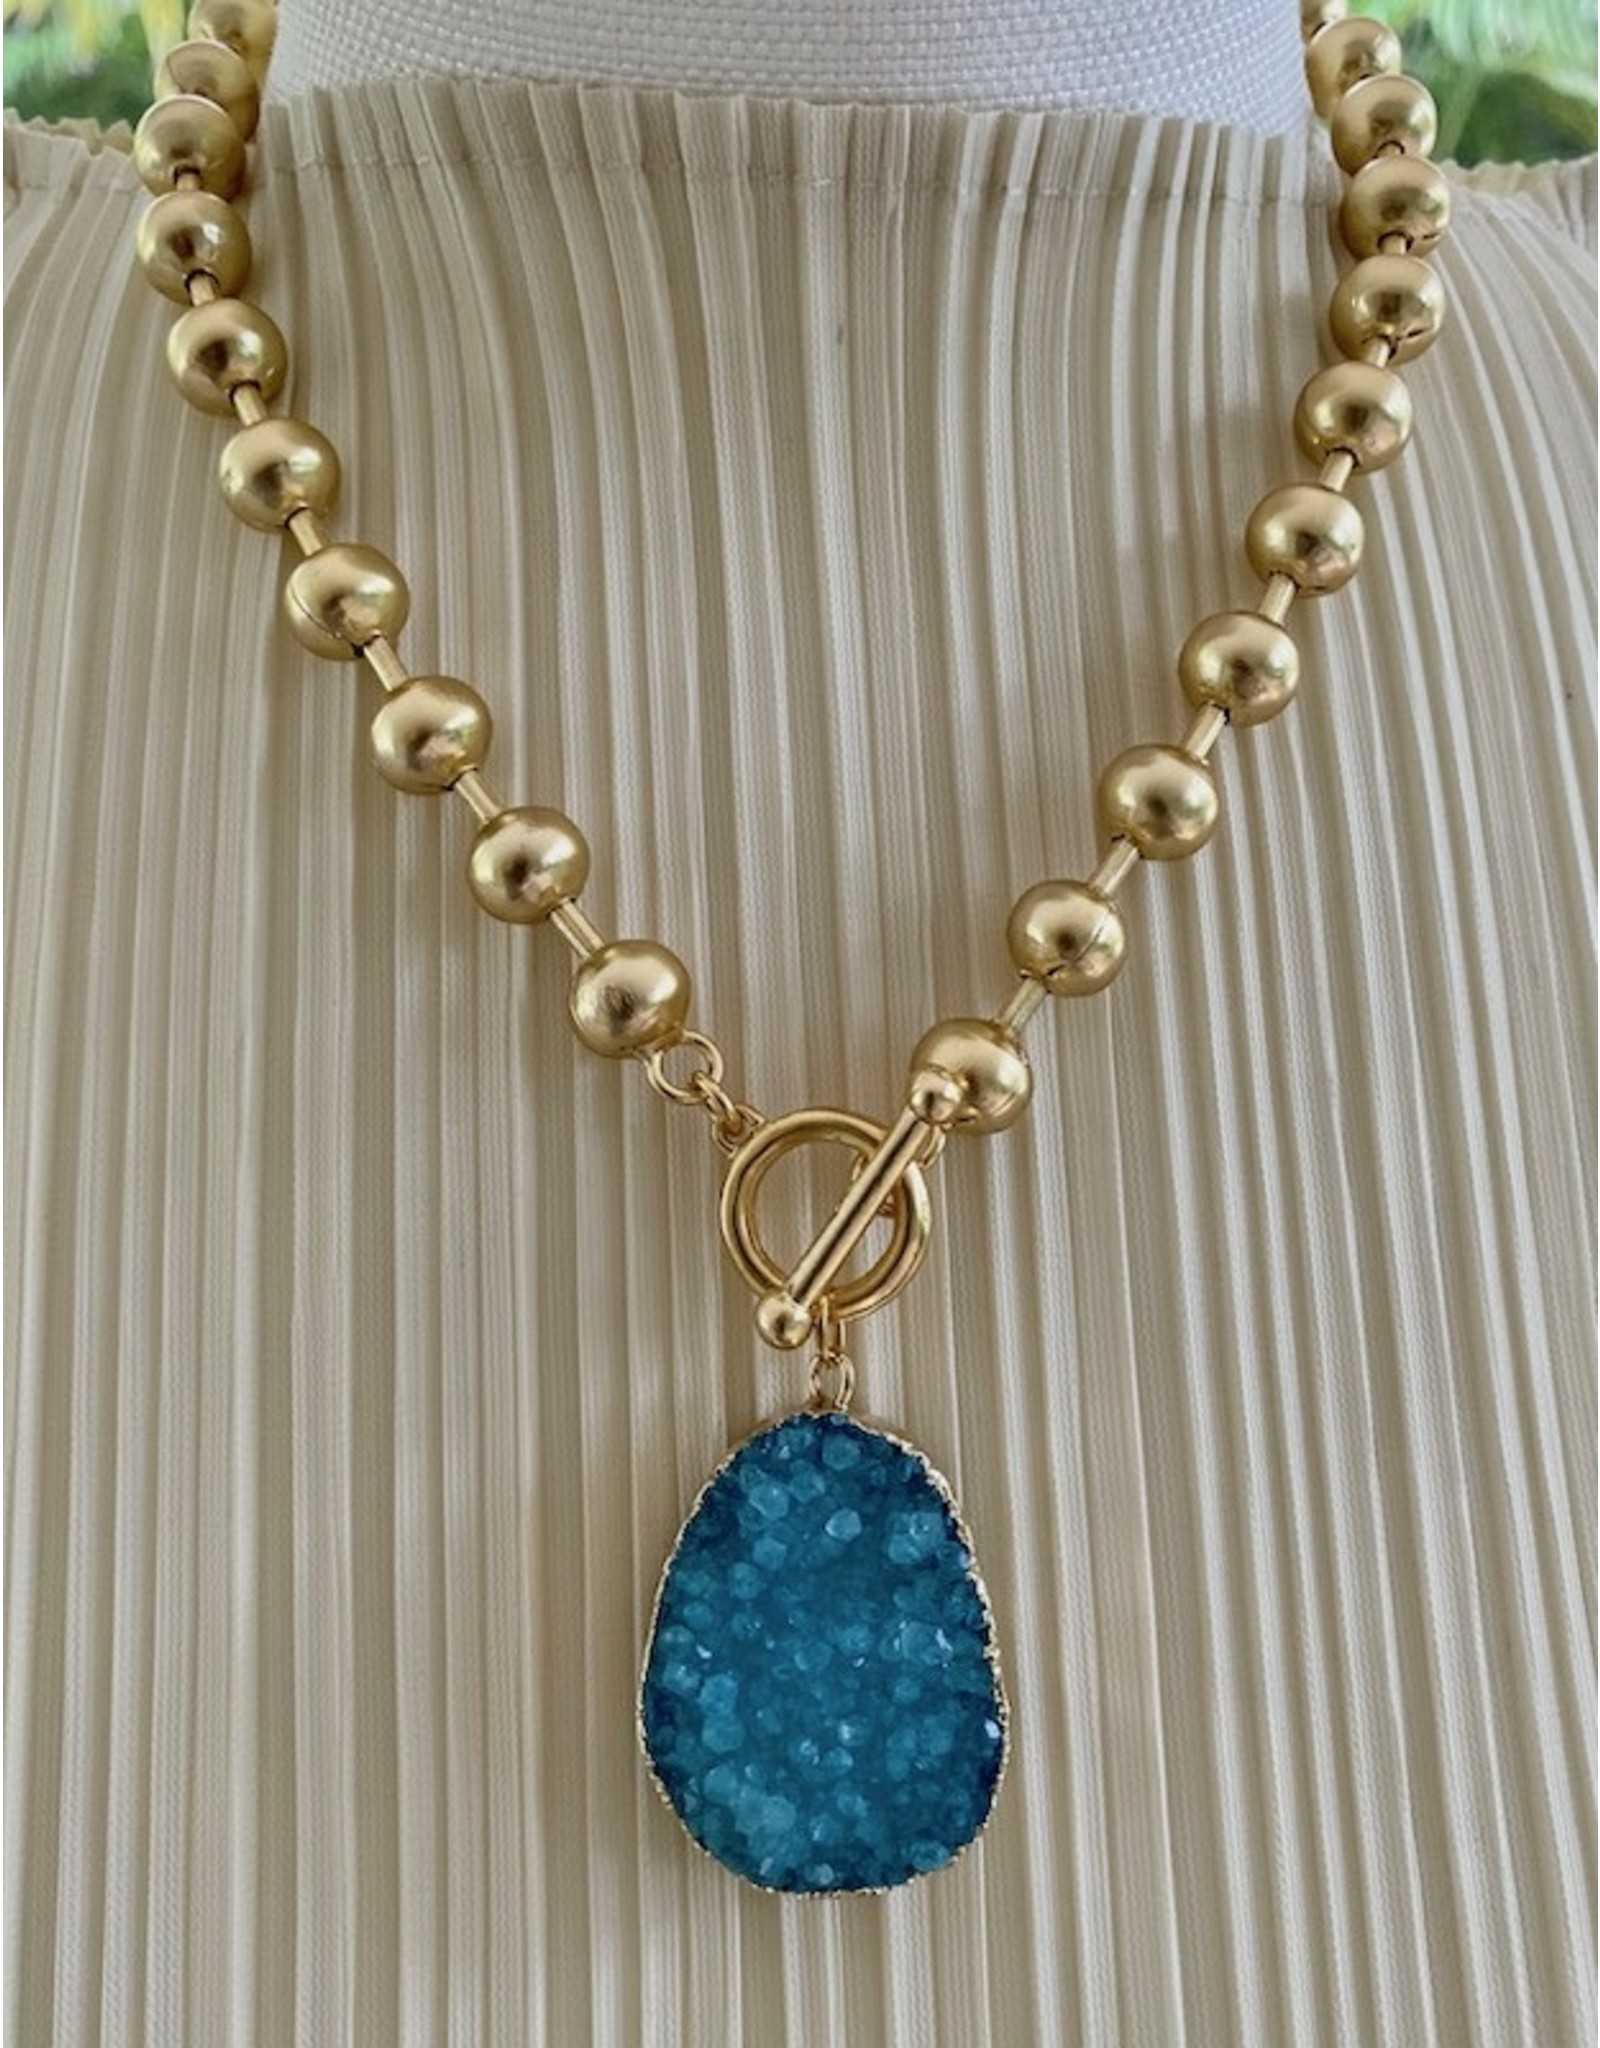 Karin Sultan Gold Turquoise Druzy